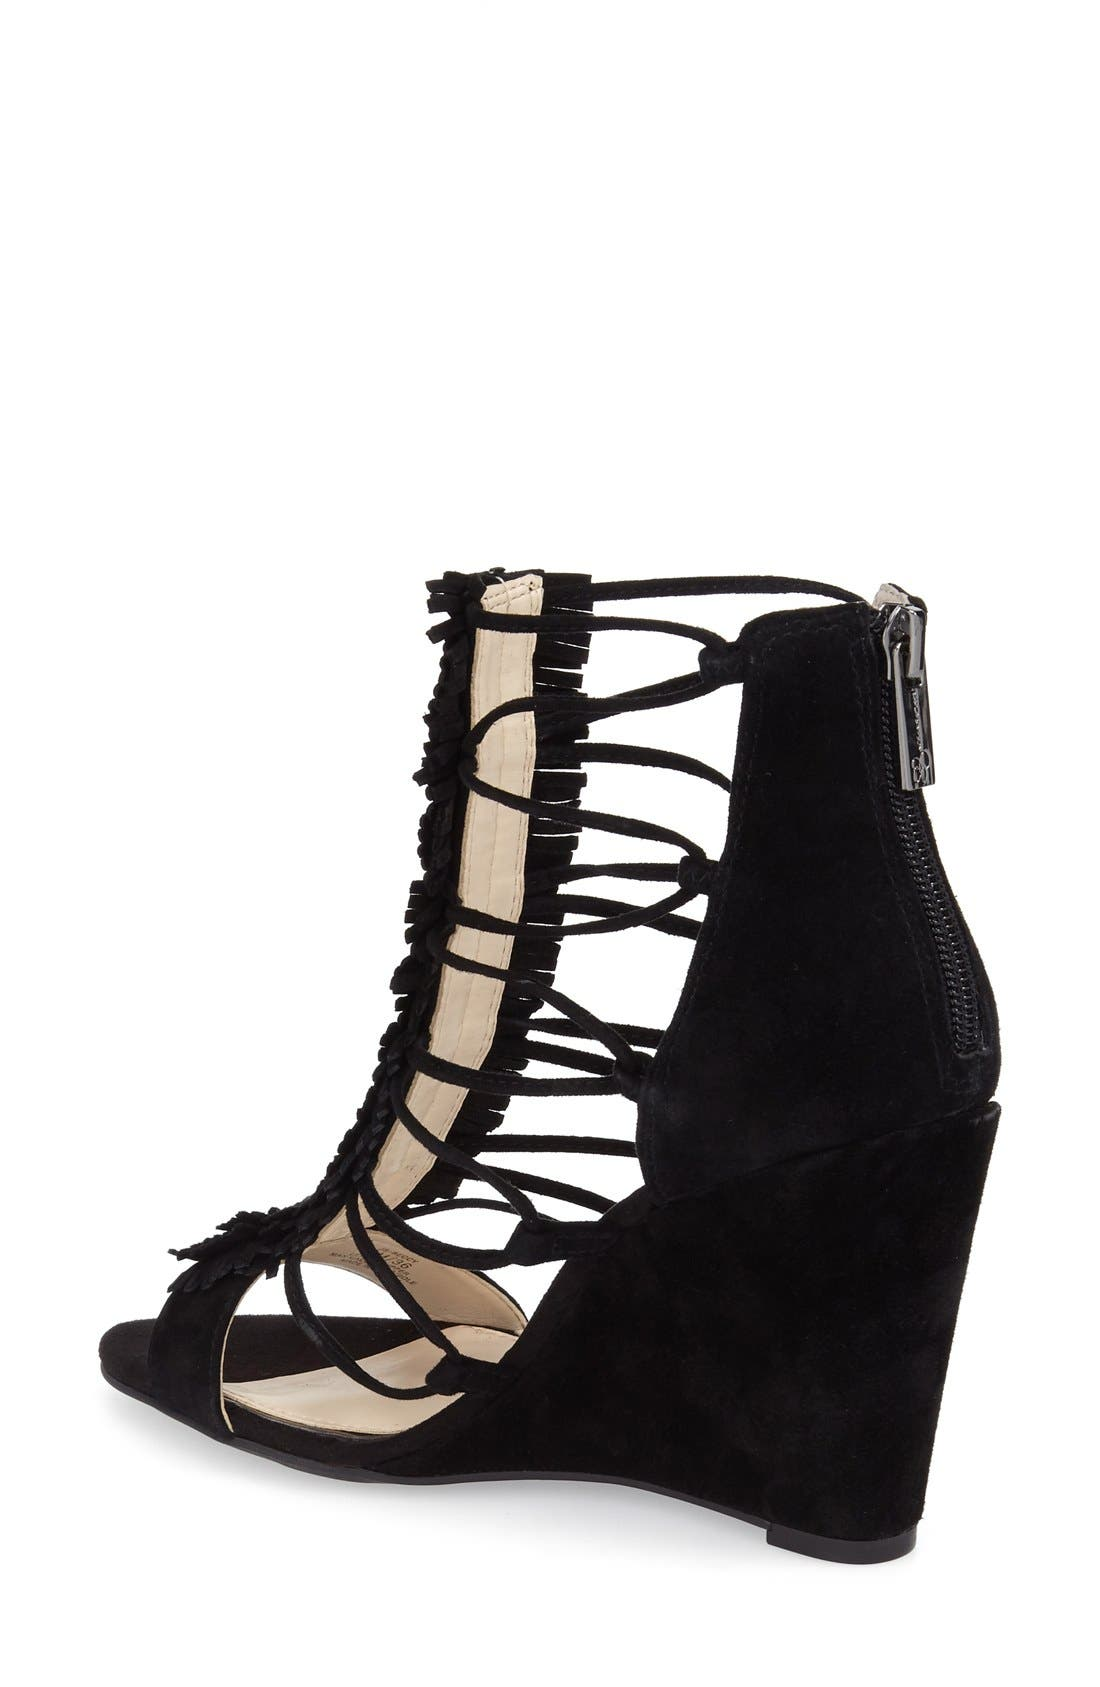 'Beccy' Wedge Sandal,                             Alternate thumbnail 2, color,                             001